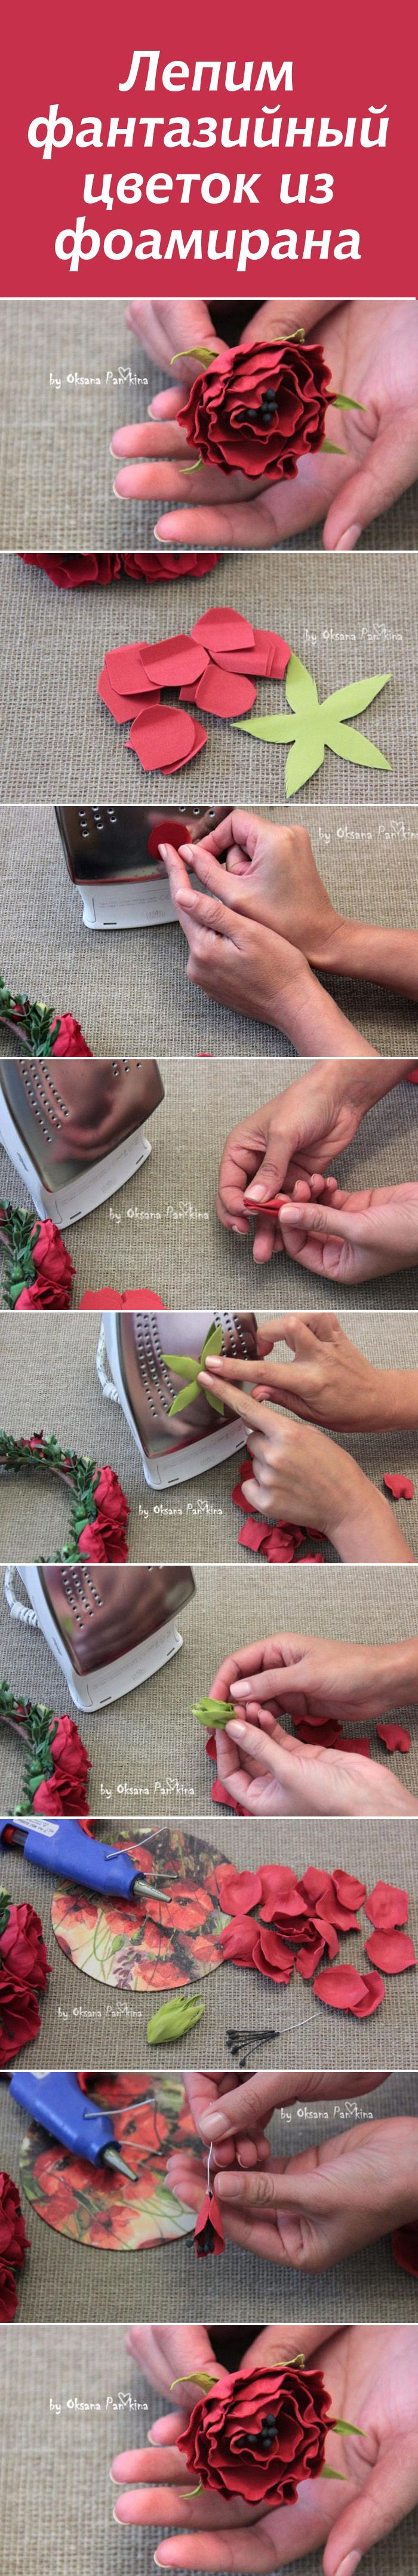 How To Make Handmade Flowers From Paper And Fabric Awesome Ideas